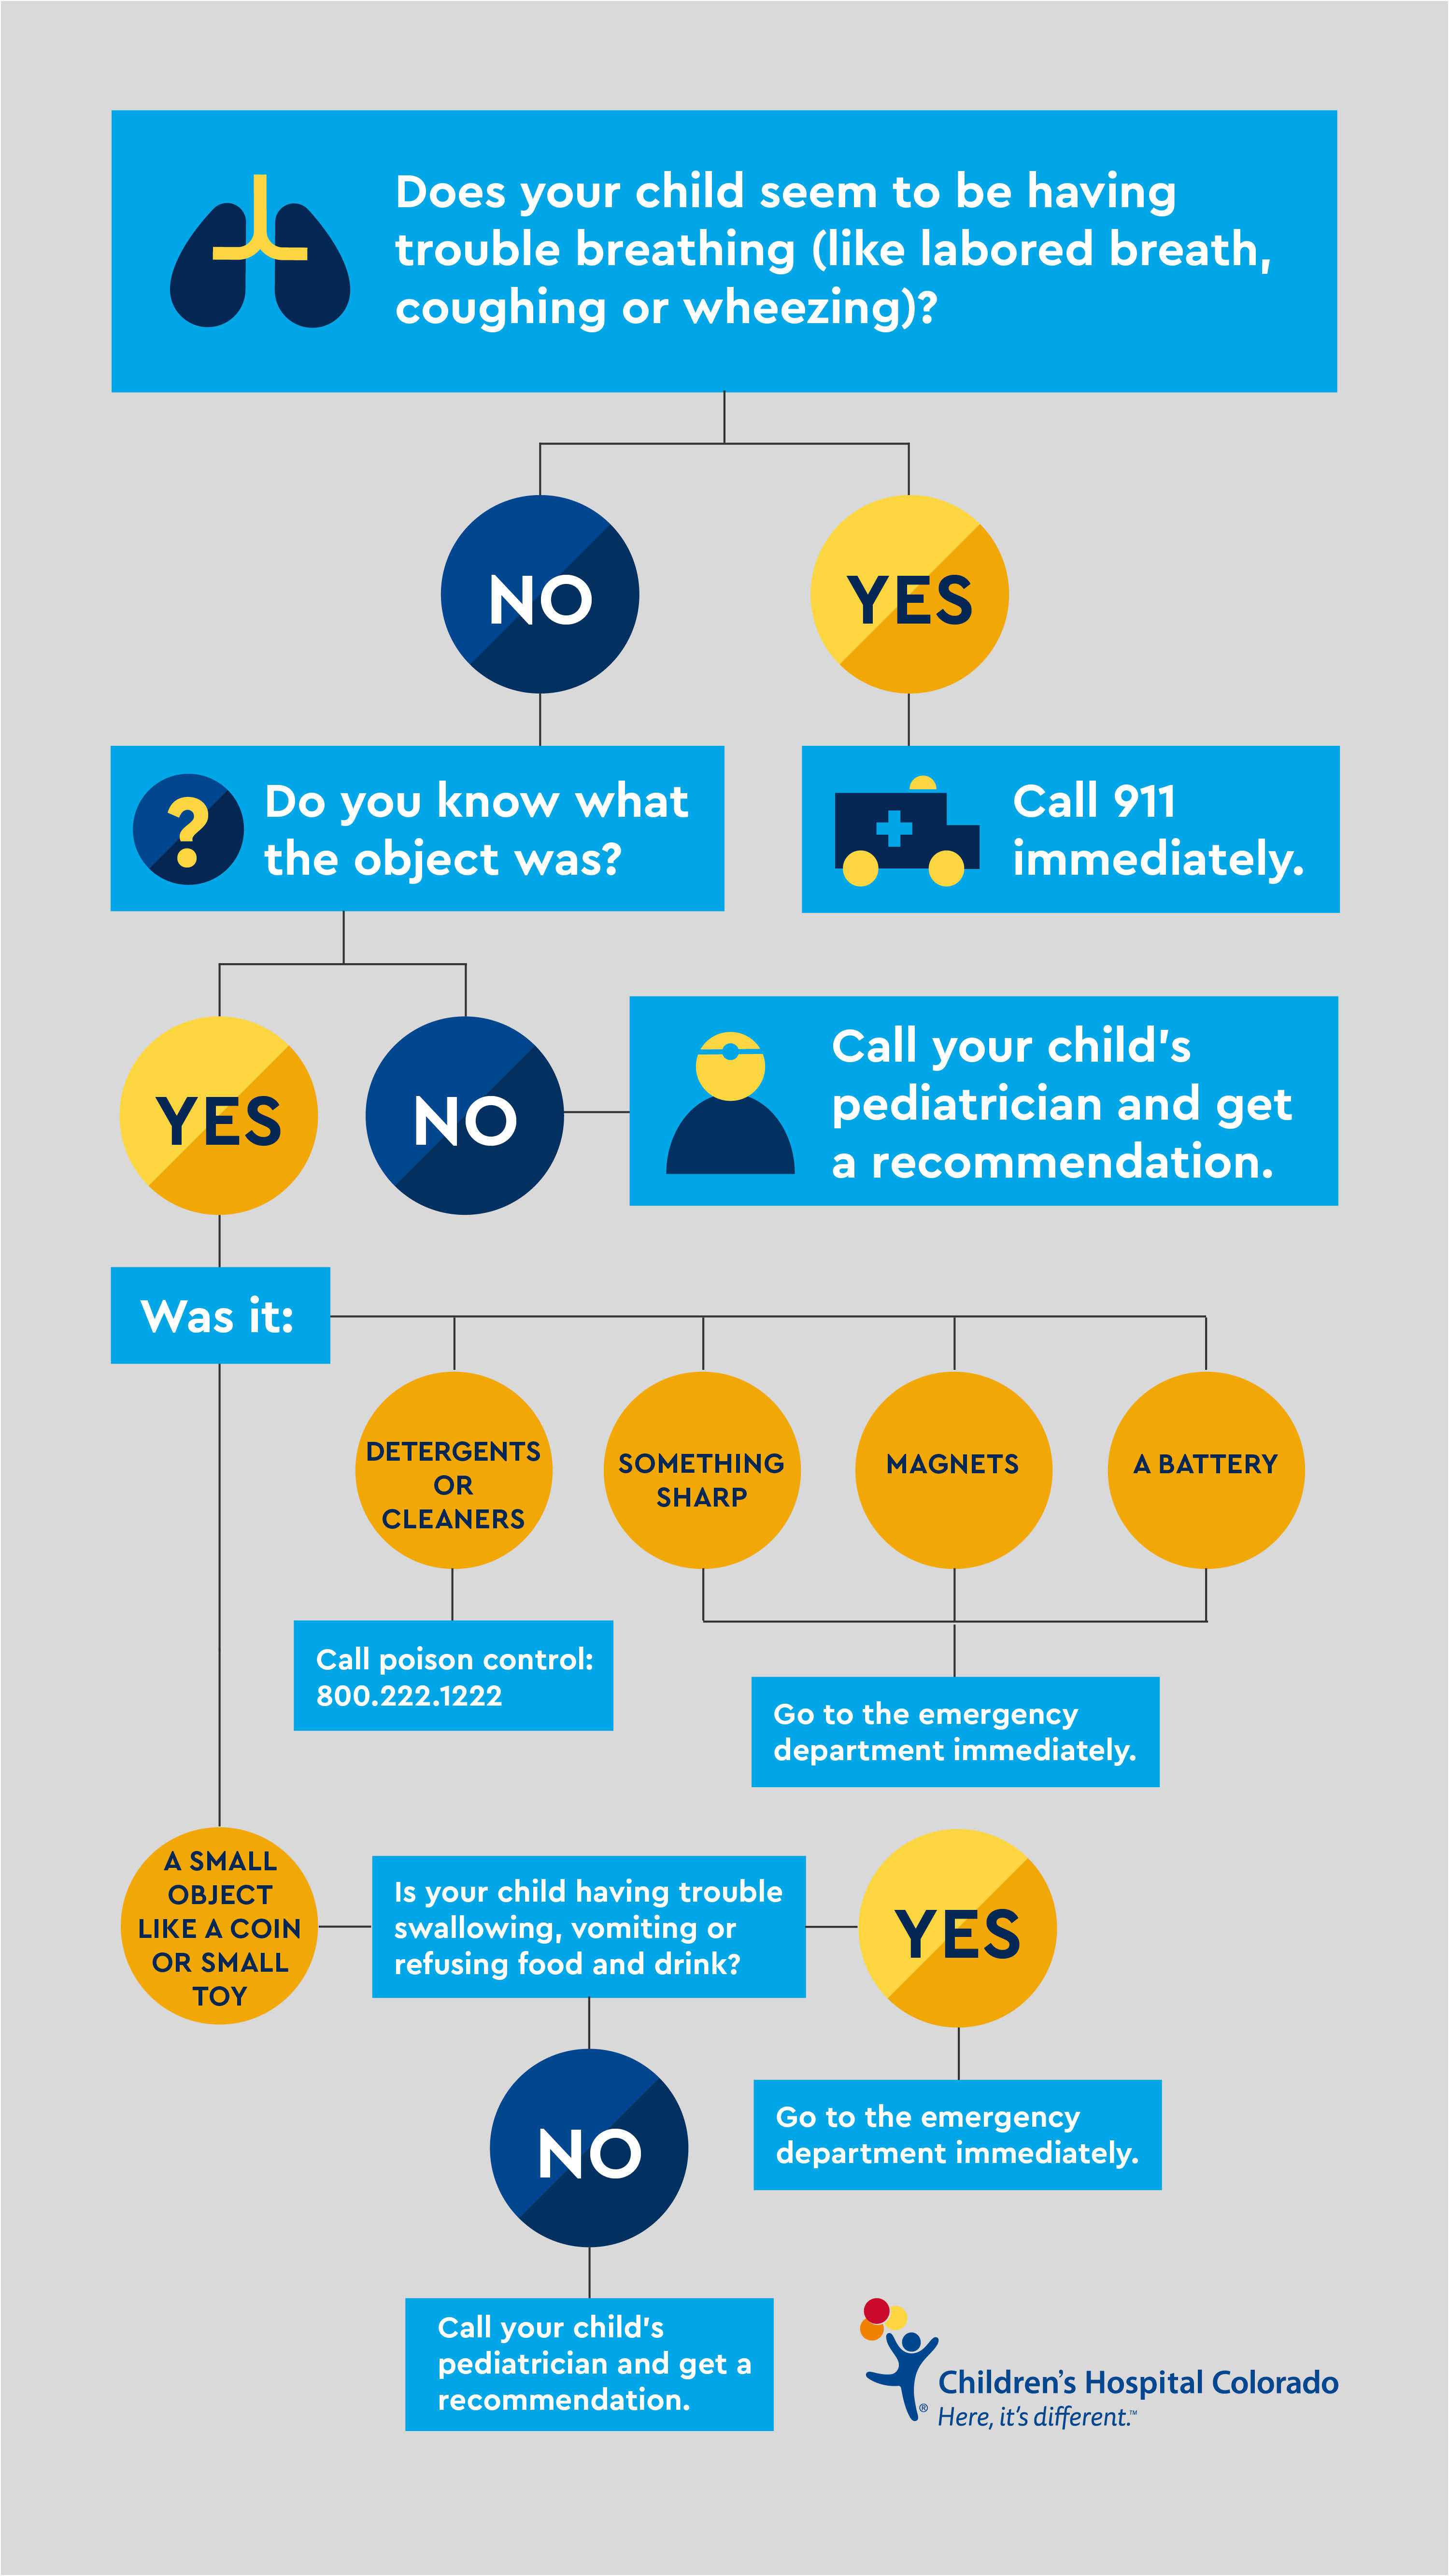 Infographic: So your kid swallowed something. Here's what to do. Does your child seem to be having trouble breathing (like labored breath, coughing or wheezing)? if yes, call 911 immediately. If no, do you know what the object was? If no, call your child's pediatrician and get a recommendation. If yes, go to the emergency department immediately for a battery, magnets or something sharp; and for detergents or cleaners, call poison control at 800-222-1222. If it was a small object like a coin or small toy and your child is having trouble swallowing, vomiting or refusing food and drink, then go to the emergency department immediately otherwise call your child's pediatrician and get a recommendation.